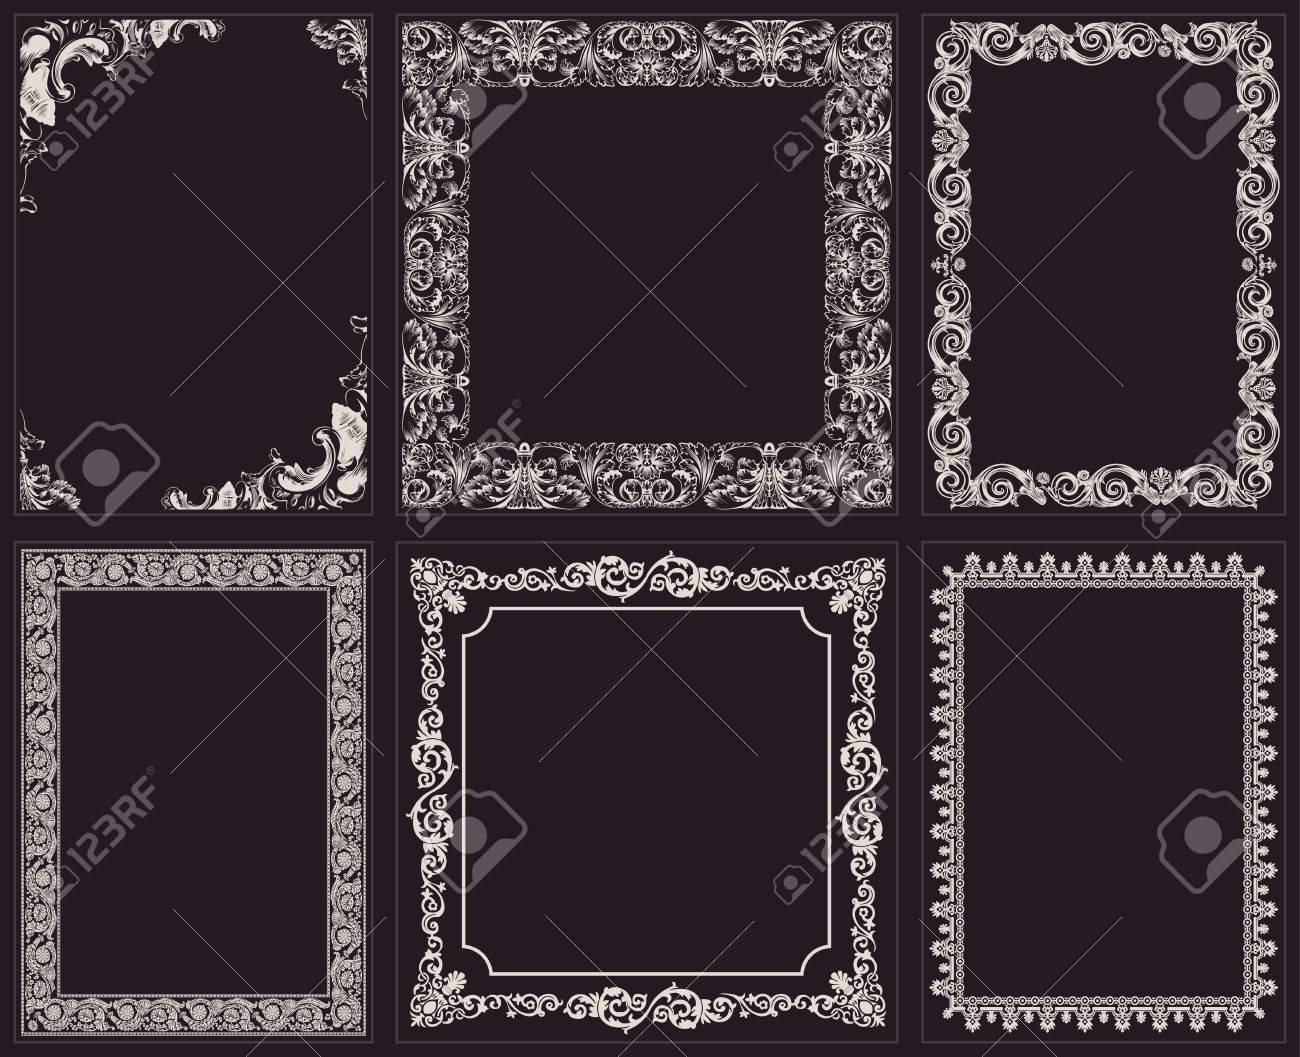 Vector calligraphic frames set baroque ornament and vintage vector calligraphic frames set baroque ornament and vintage black border stock vector 40022254 jeuxipadfo Image collections